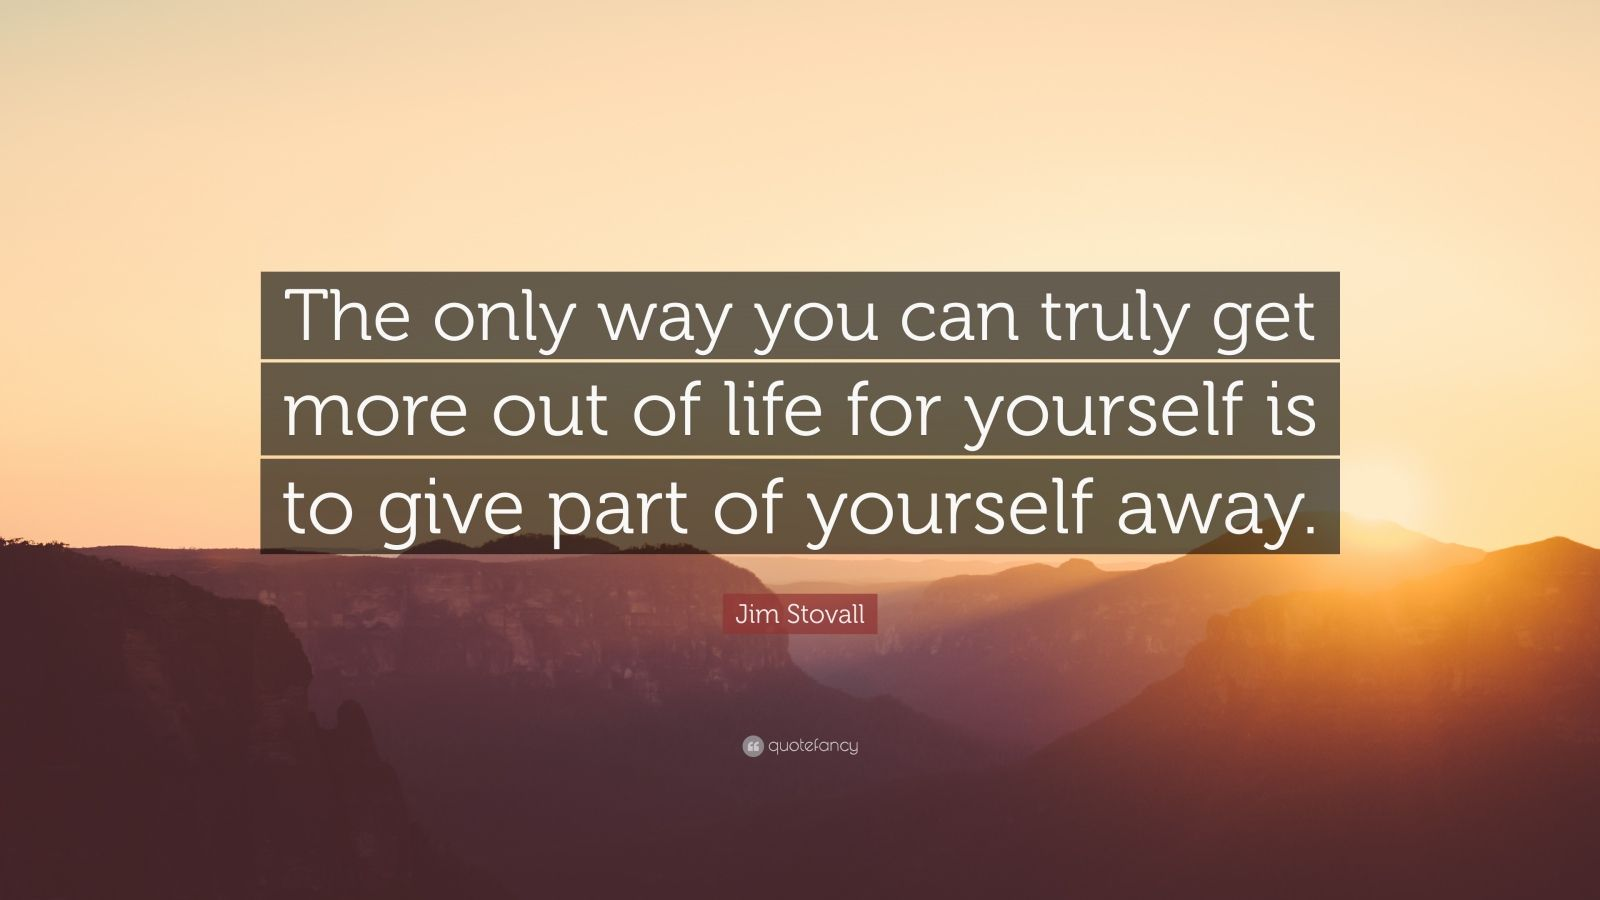 """Jim Stovall Quote: """"The only way you can truly get more out of life for yourself is to give part of yourself away."""""""